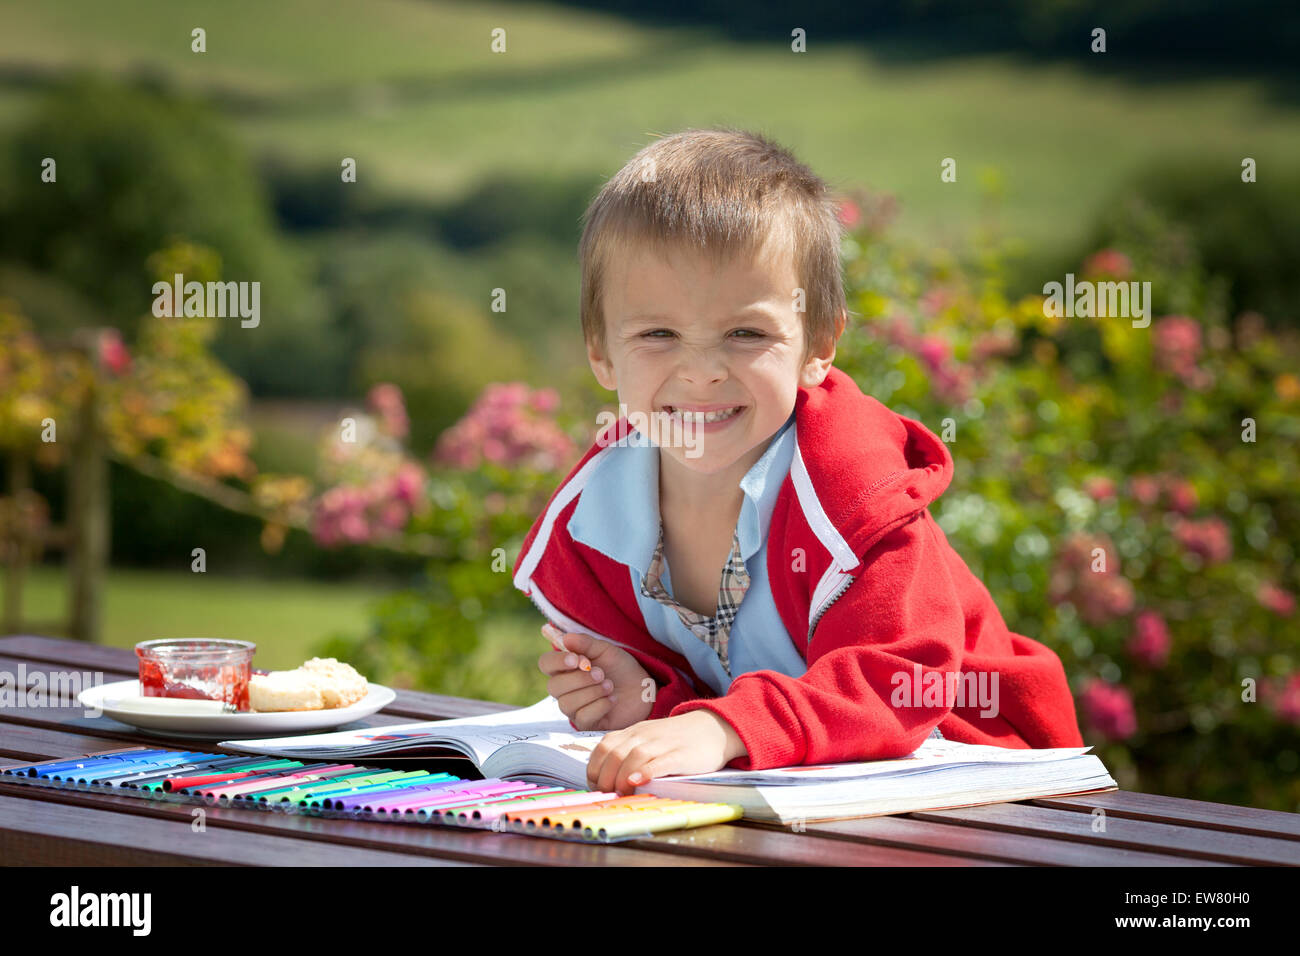 Adorable boy in red sweater, drawing a painting in a book, outdoor ...